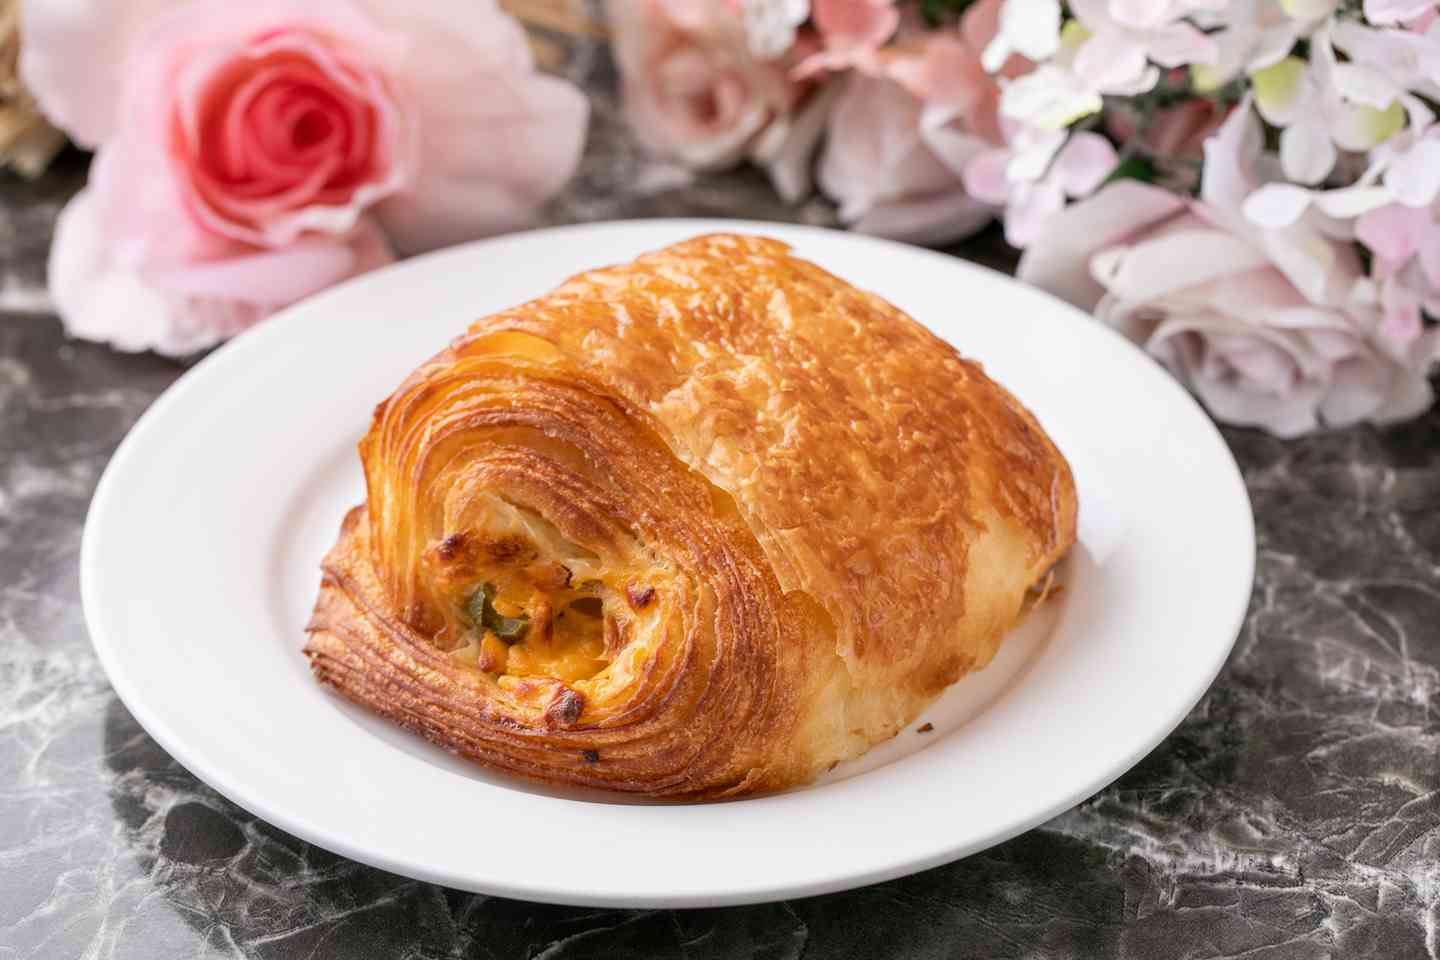 Jalapenos & Cheese Croissant